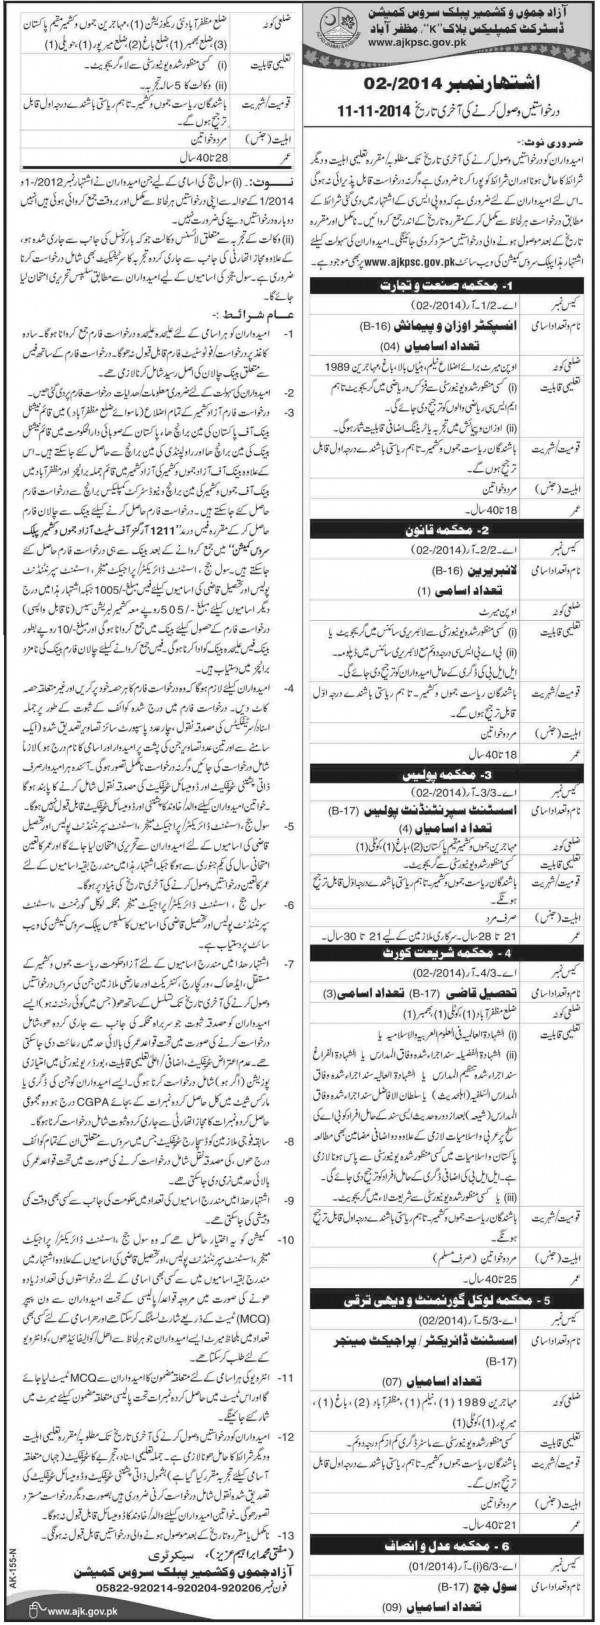 AJK PSC Jobs 2016 Eligibility Criteria Application Form Download Azad Jammu Kashmir